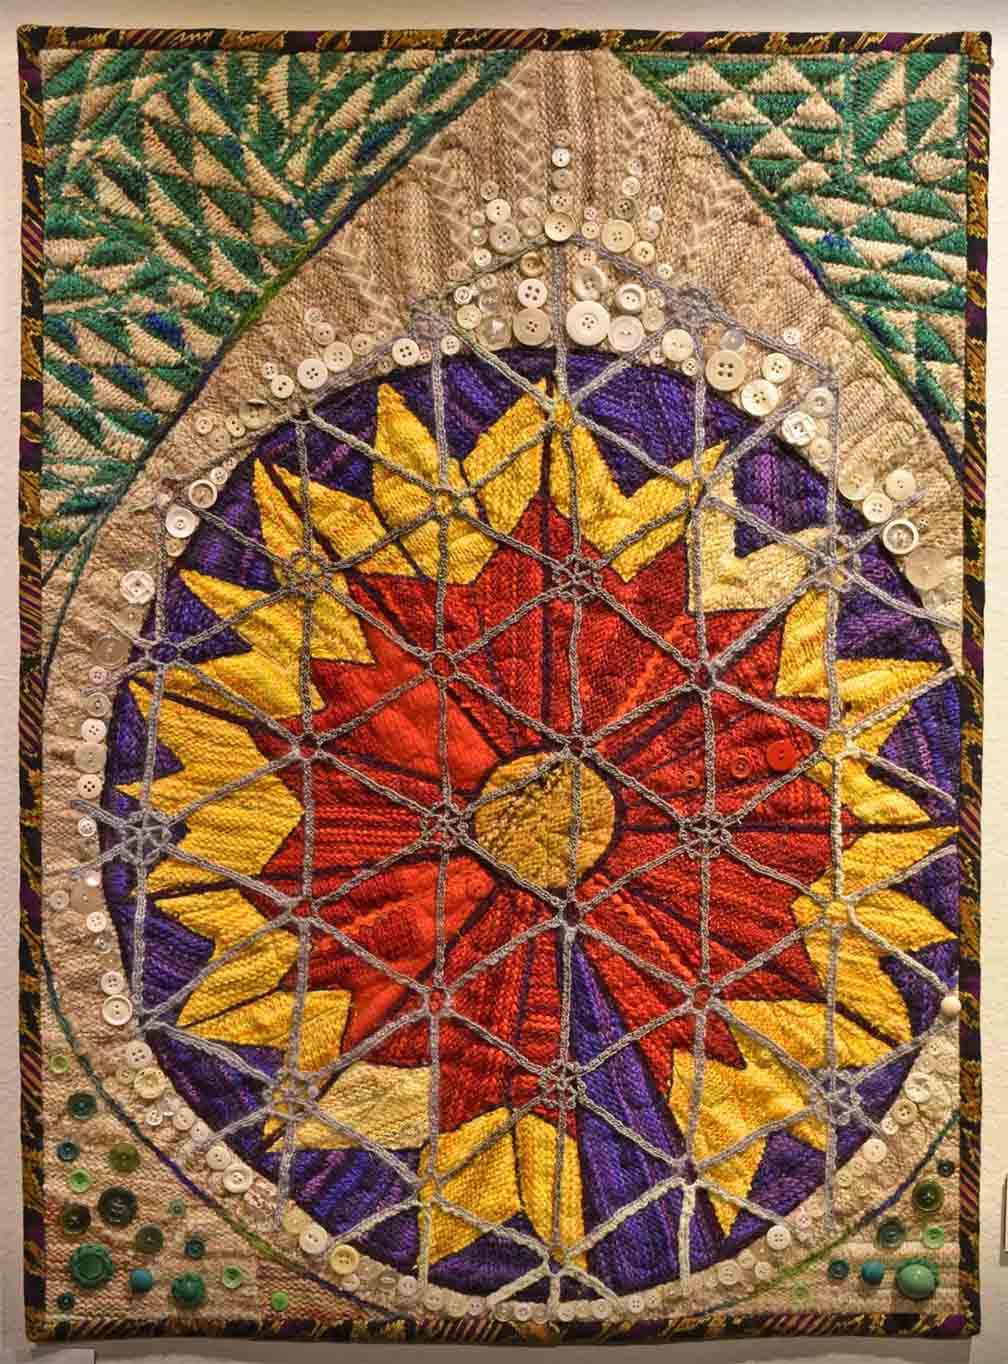 Art quilt in vertical orientation with teardrop shape in which yellow and red floral images are stitched